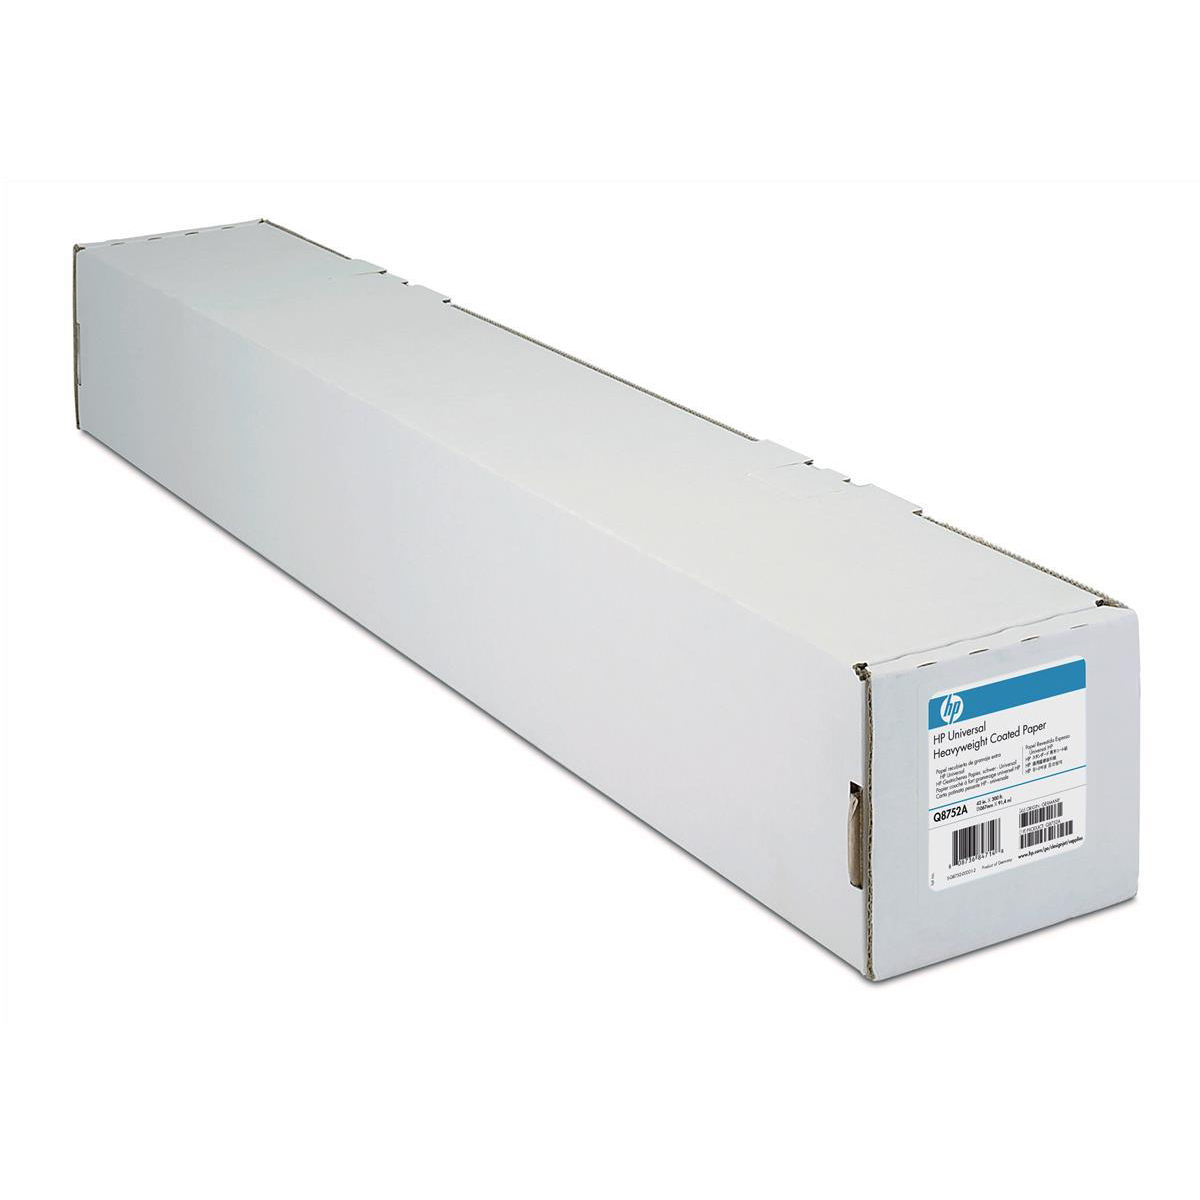 Other Sizes Hewlett Packard [HP] Coated Paper Roll 90gsm 841mm x 45.7m White Ref Q1441A